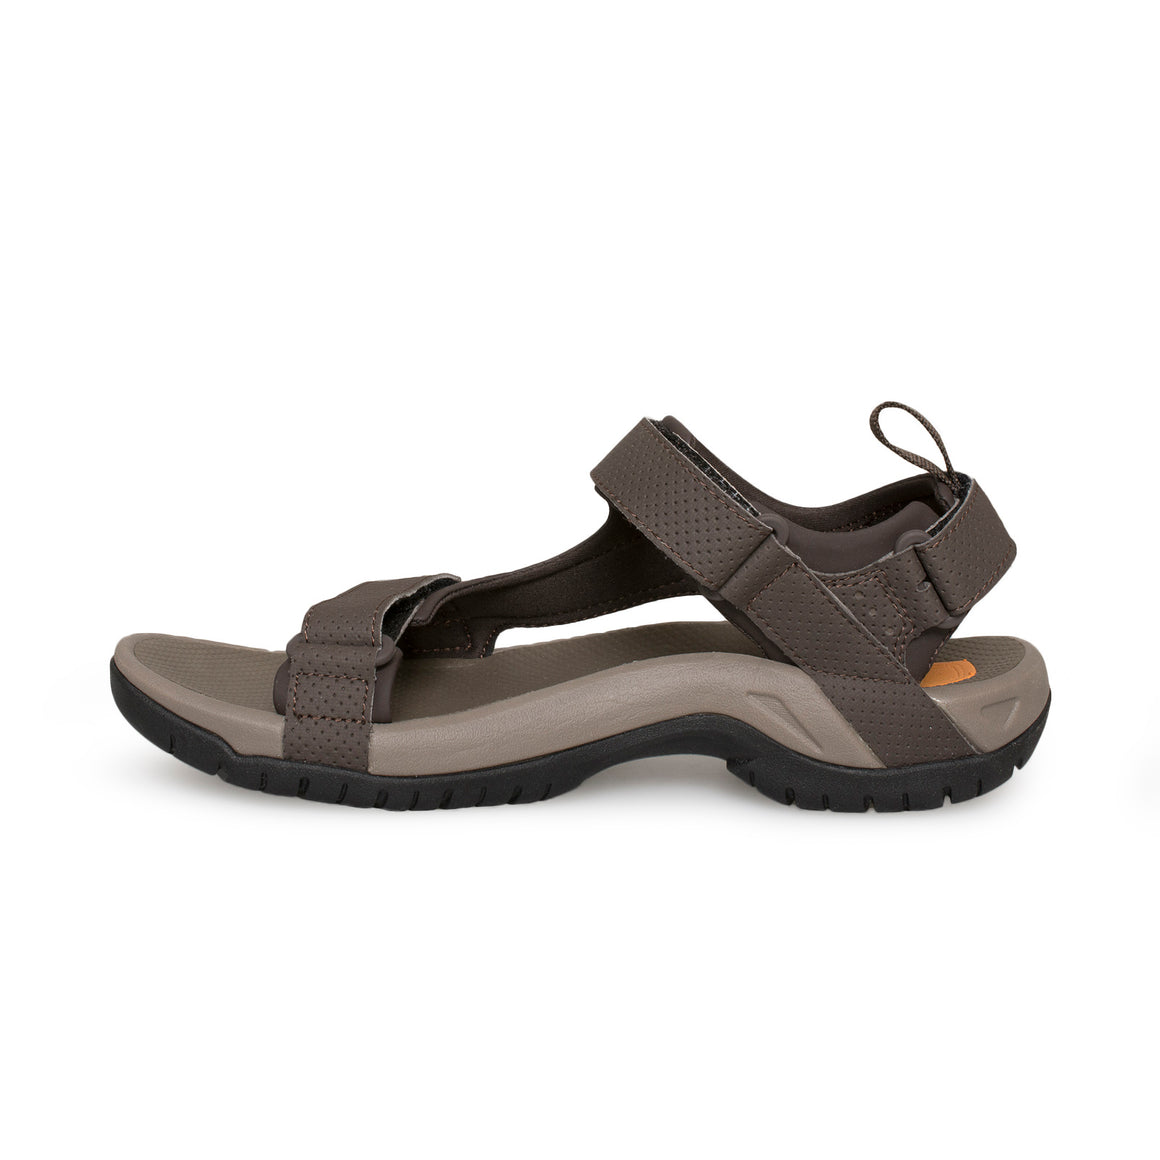 Teva Minam Turkish Coffee Sandals